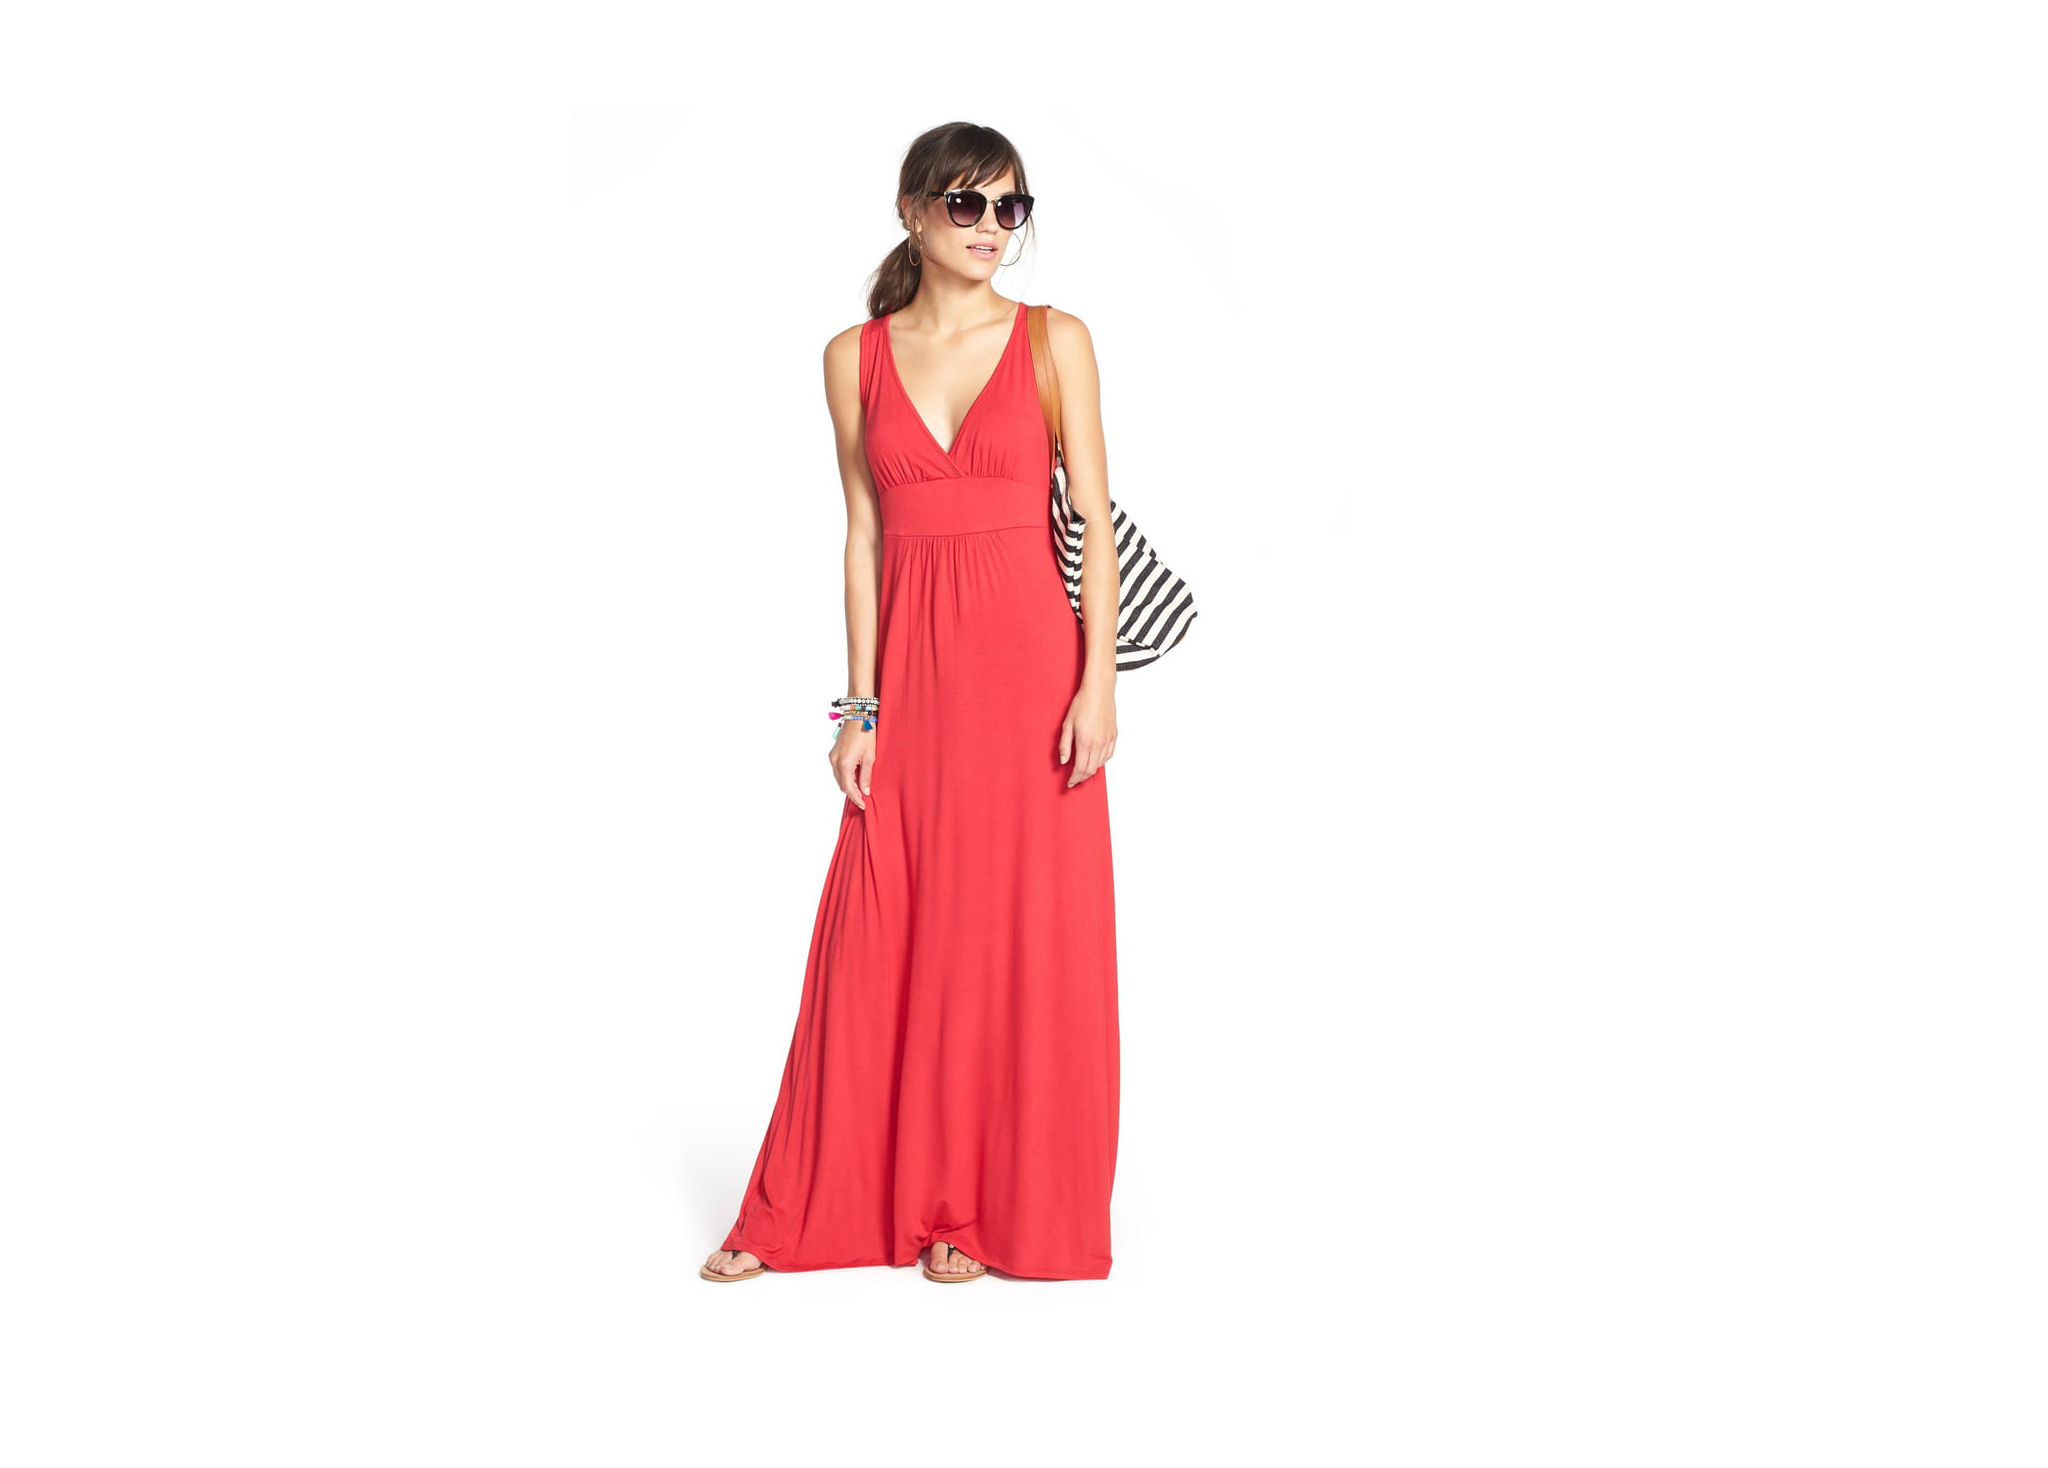 365e475fa347c Hundreds of Nordstrom Shoppers Give This Dress Five Stars